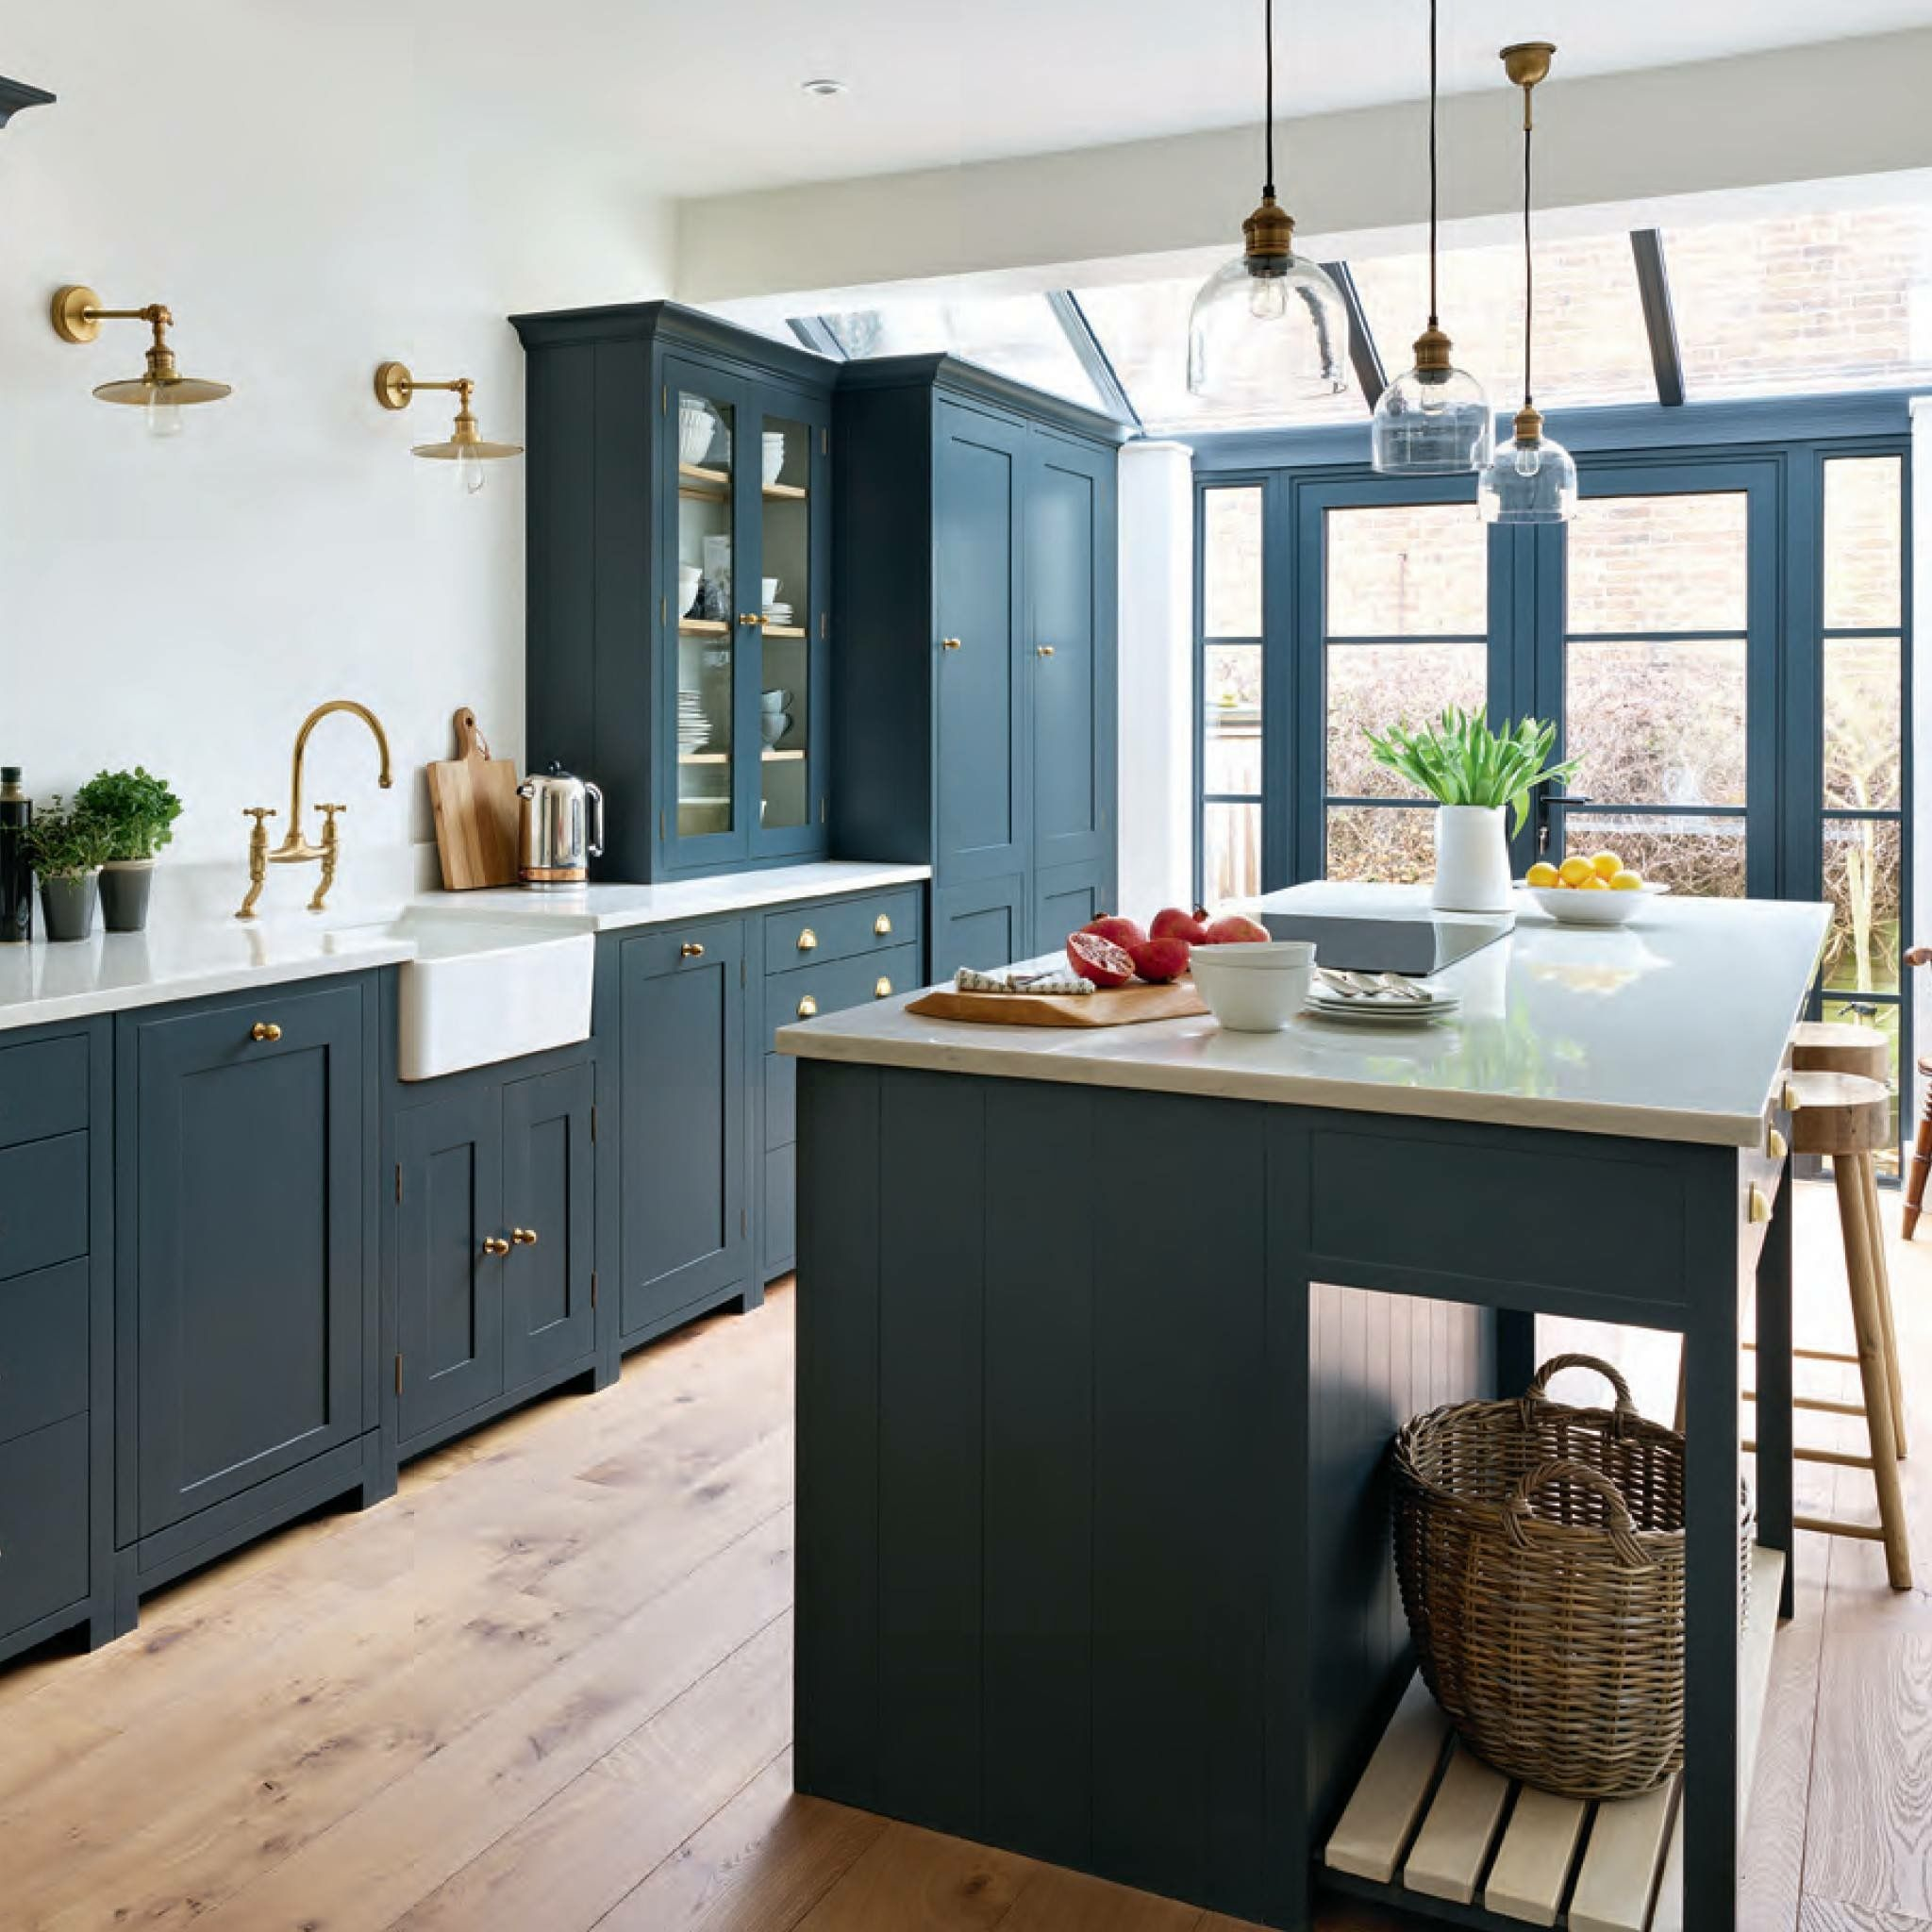 Beautiful Lights Above The Sink Great Breakfast Bar Door Frames - Lights above breakfast bar